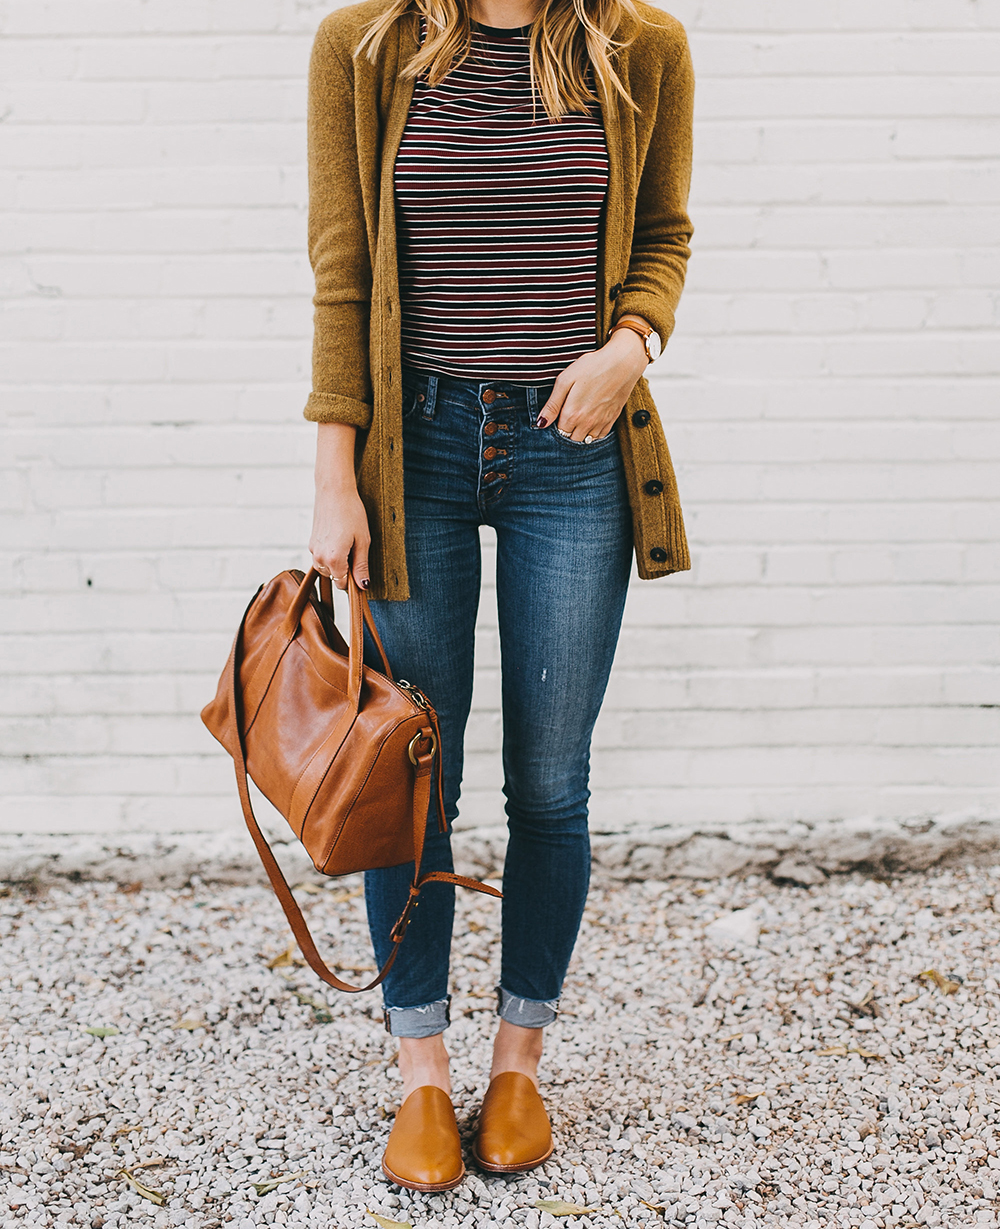 livvyland-blog-olivia-watson-austin-texas-fashion-lifestyle-blogger-madewell-grandpa-cardigan-button-up-high-rise-skinny-jeans-tan-leather-slides-fall-outfit-style-idea-3